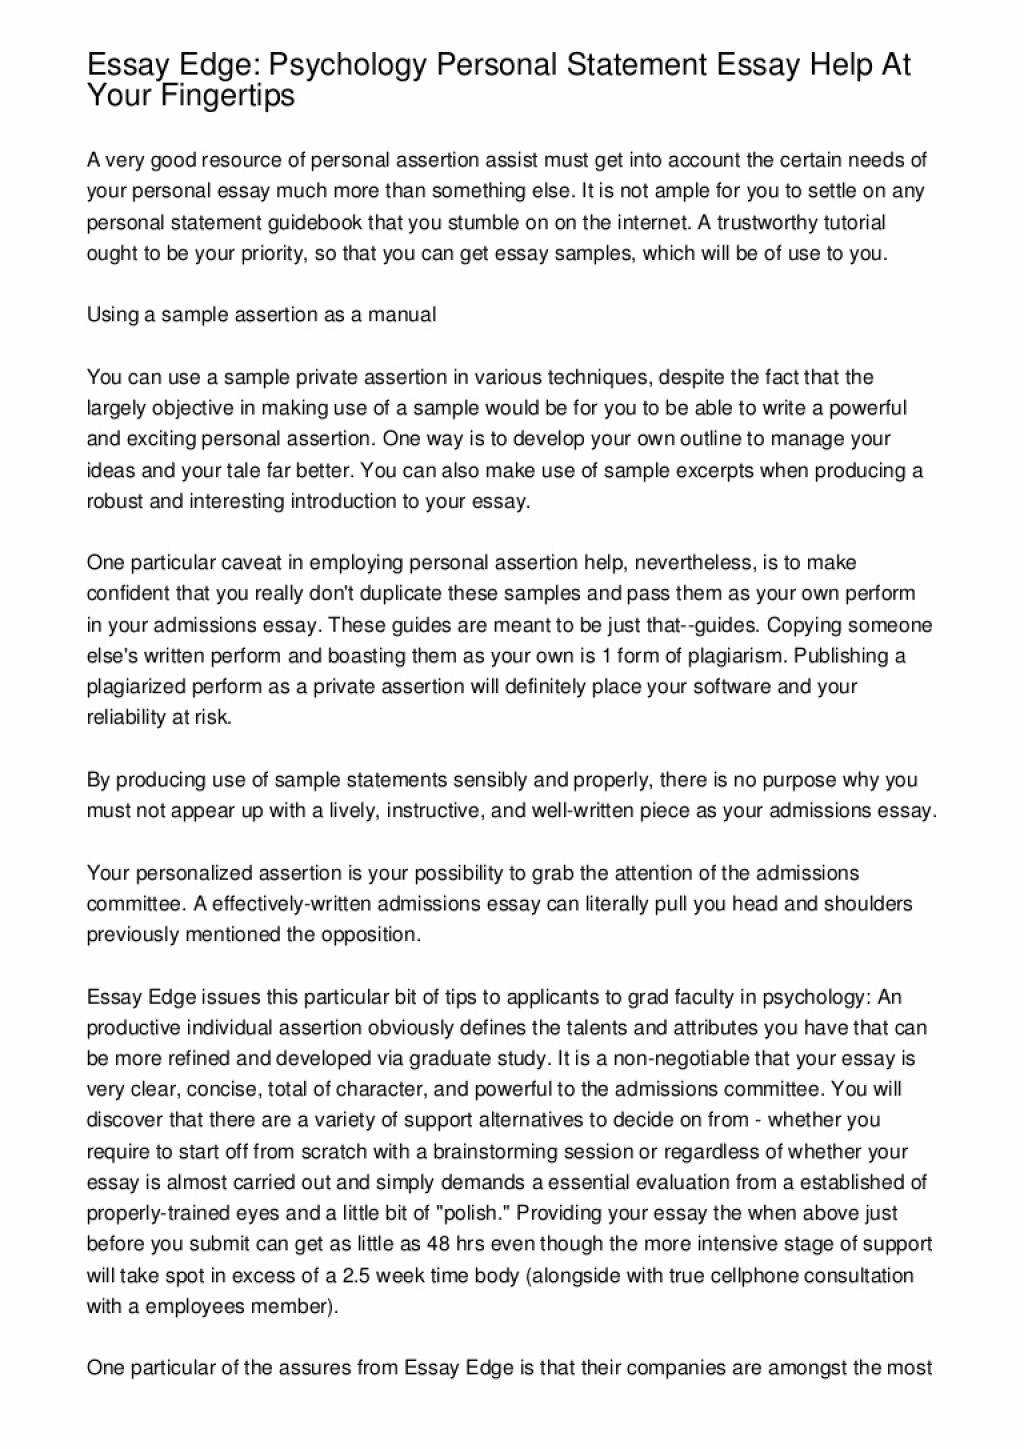 011 Howessayedgeeditingserviceworks Phpapp02 Thumbnail Essay Edge Unusual Essayedge Personal Statement Review Pricing Large